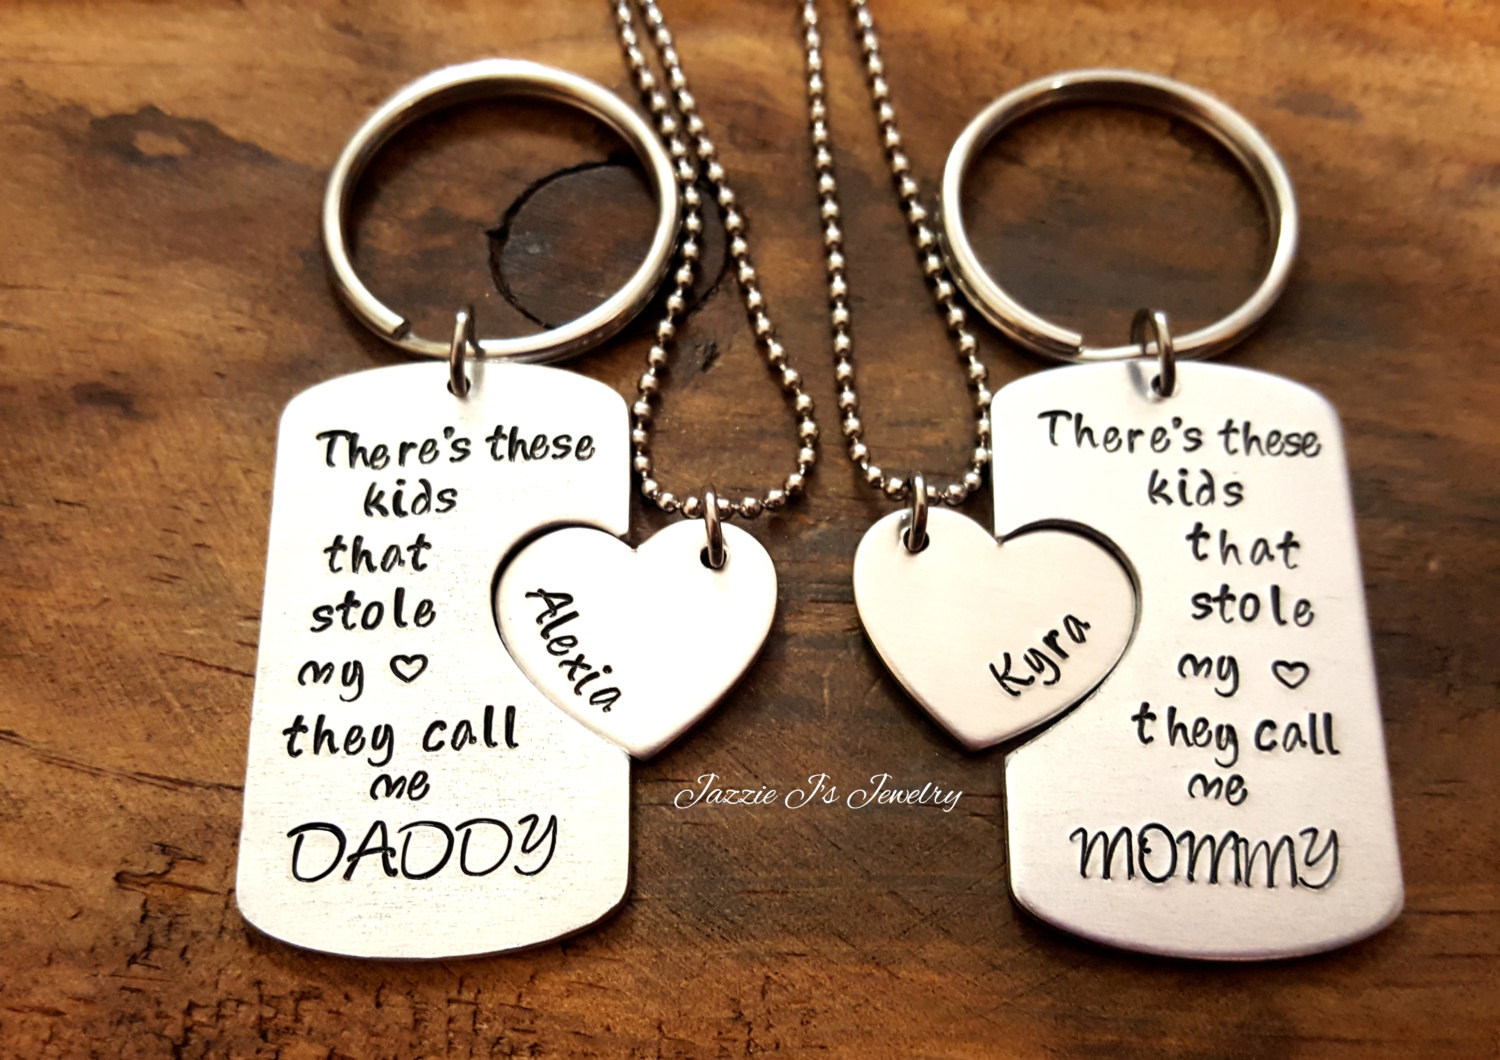 Gorgeous Dad Toger Gifts Mom Dad Who Have Everything Il Original Res Se Kids That Stole My Heart Y Call Me Gift Gifts Mom baby Gifts For Mom And Dad